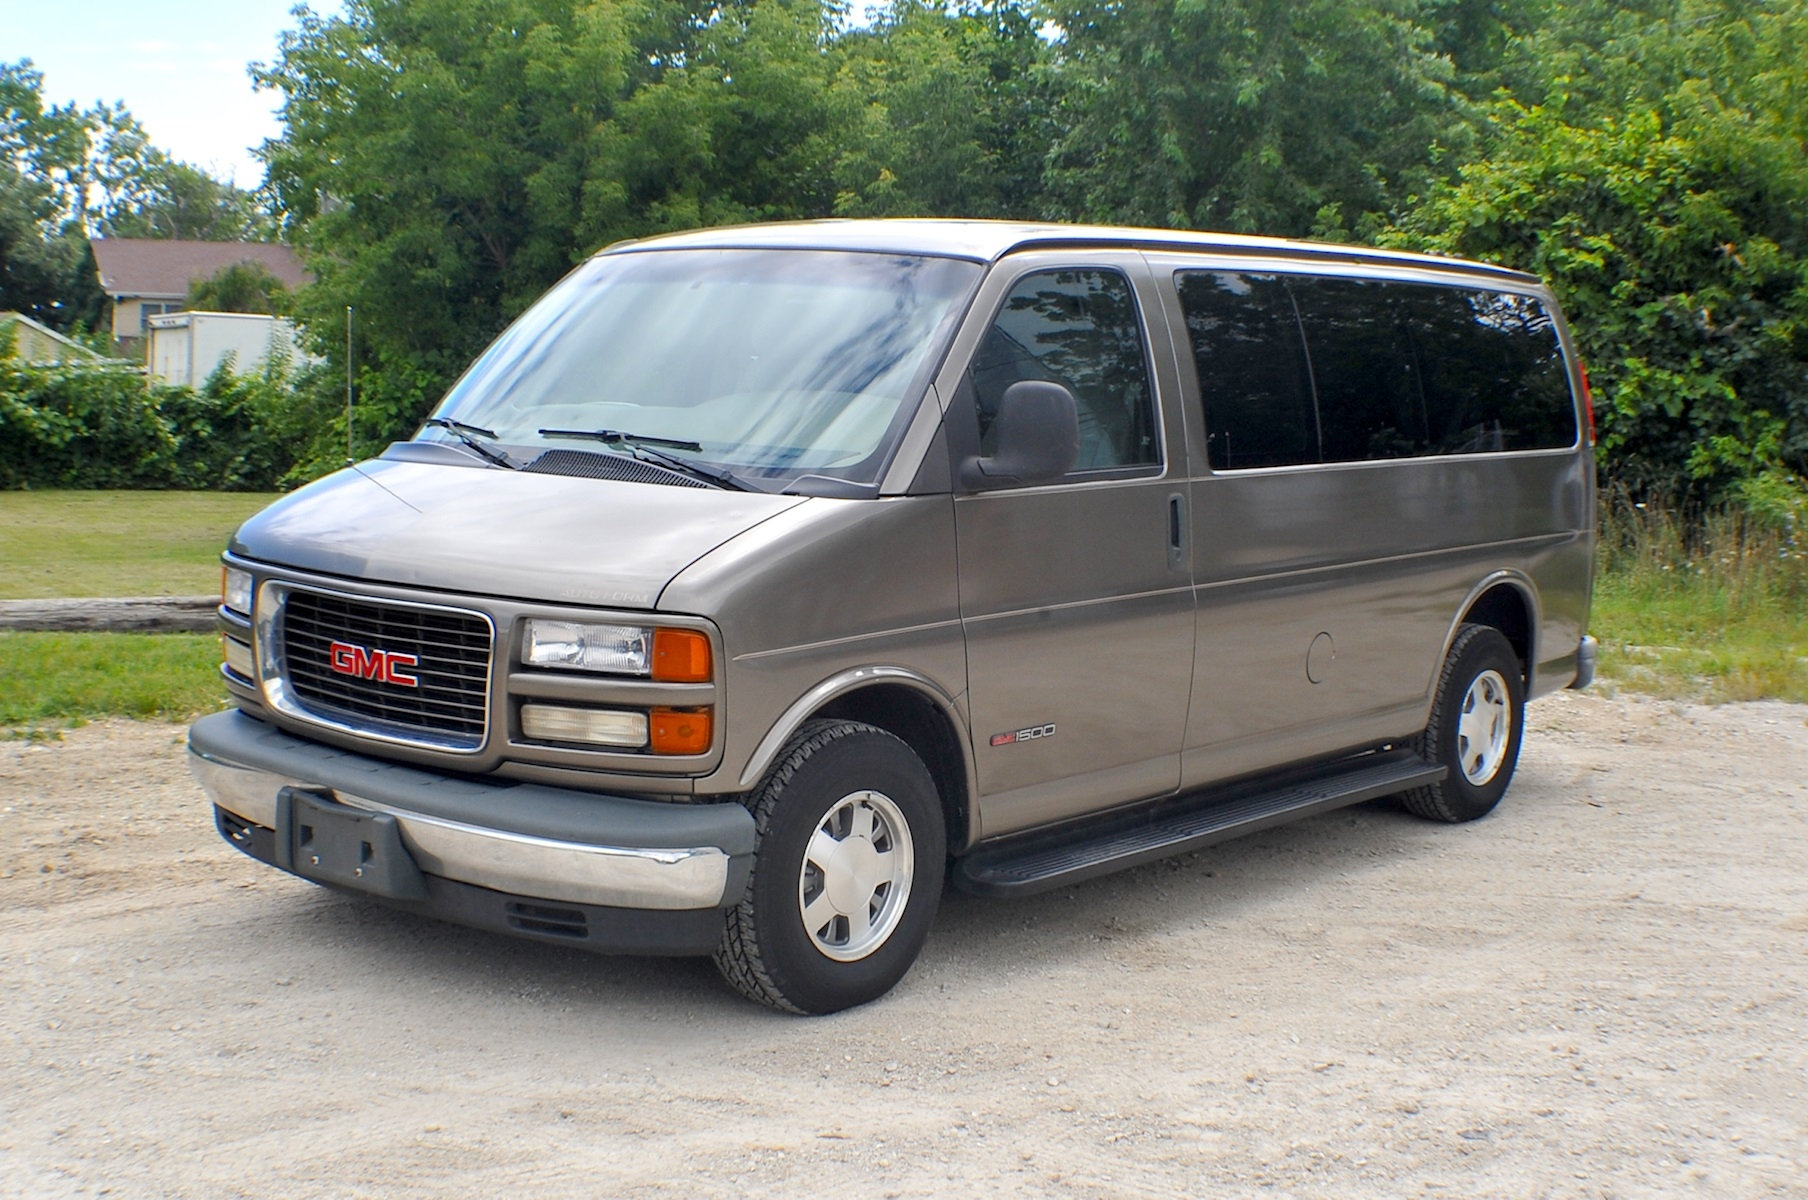 2000 GMC Savana Pewter 1500 Conversion Van Sale Antioch Zion Waukegan Lake County Illinois